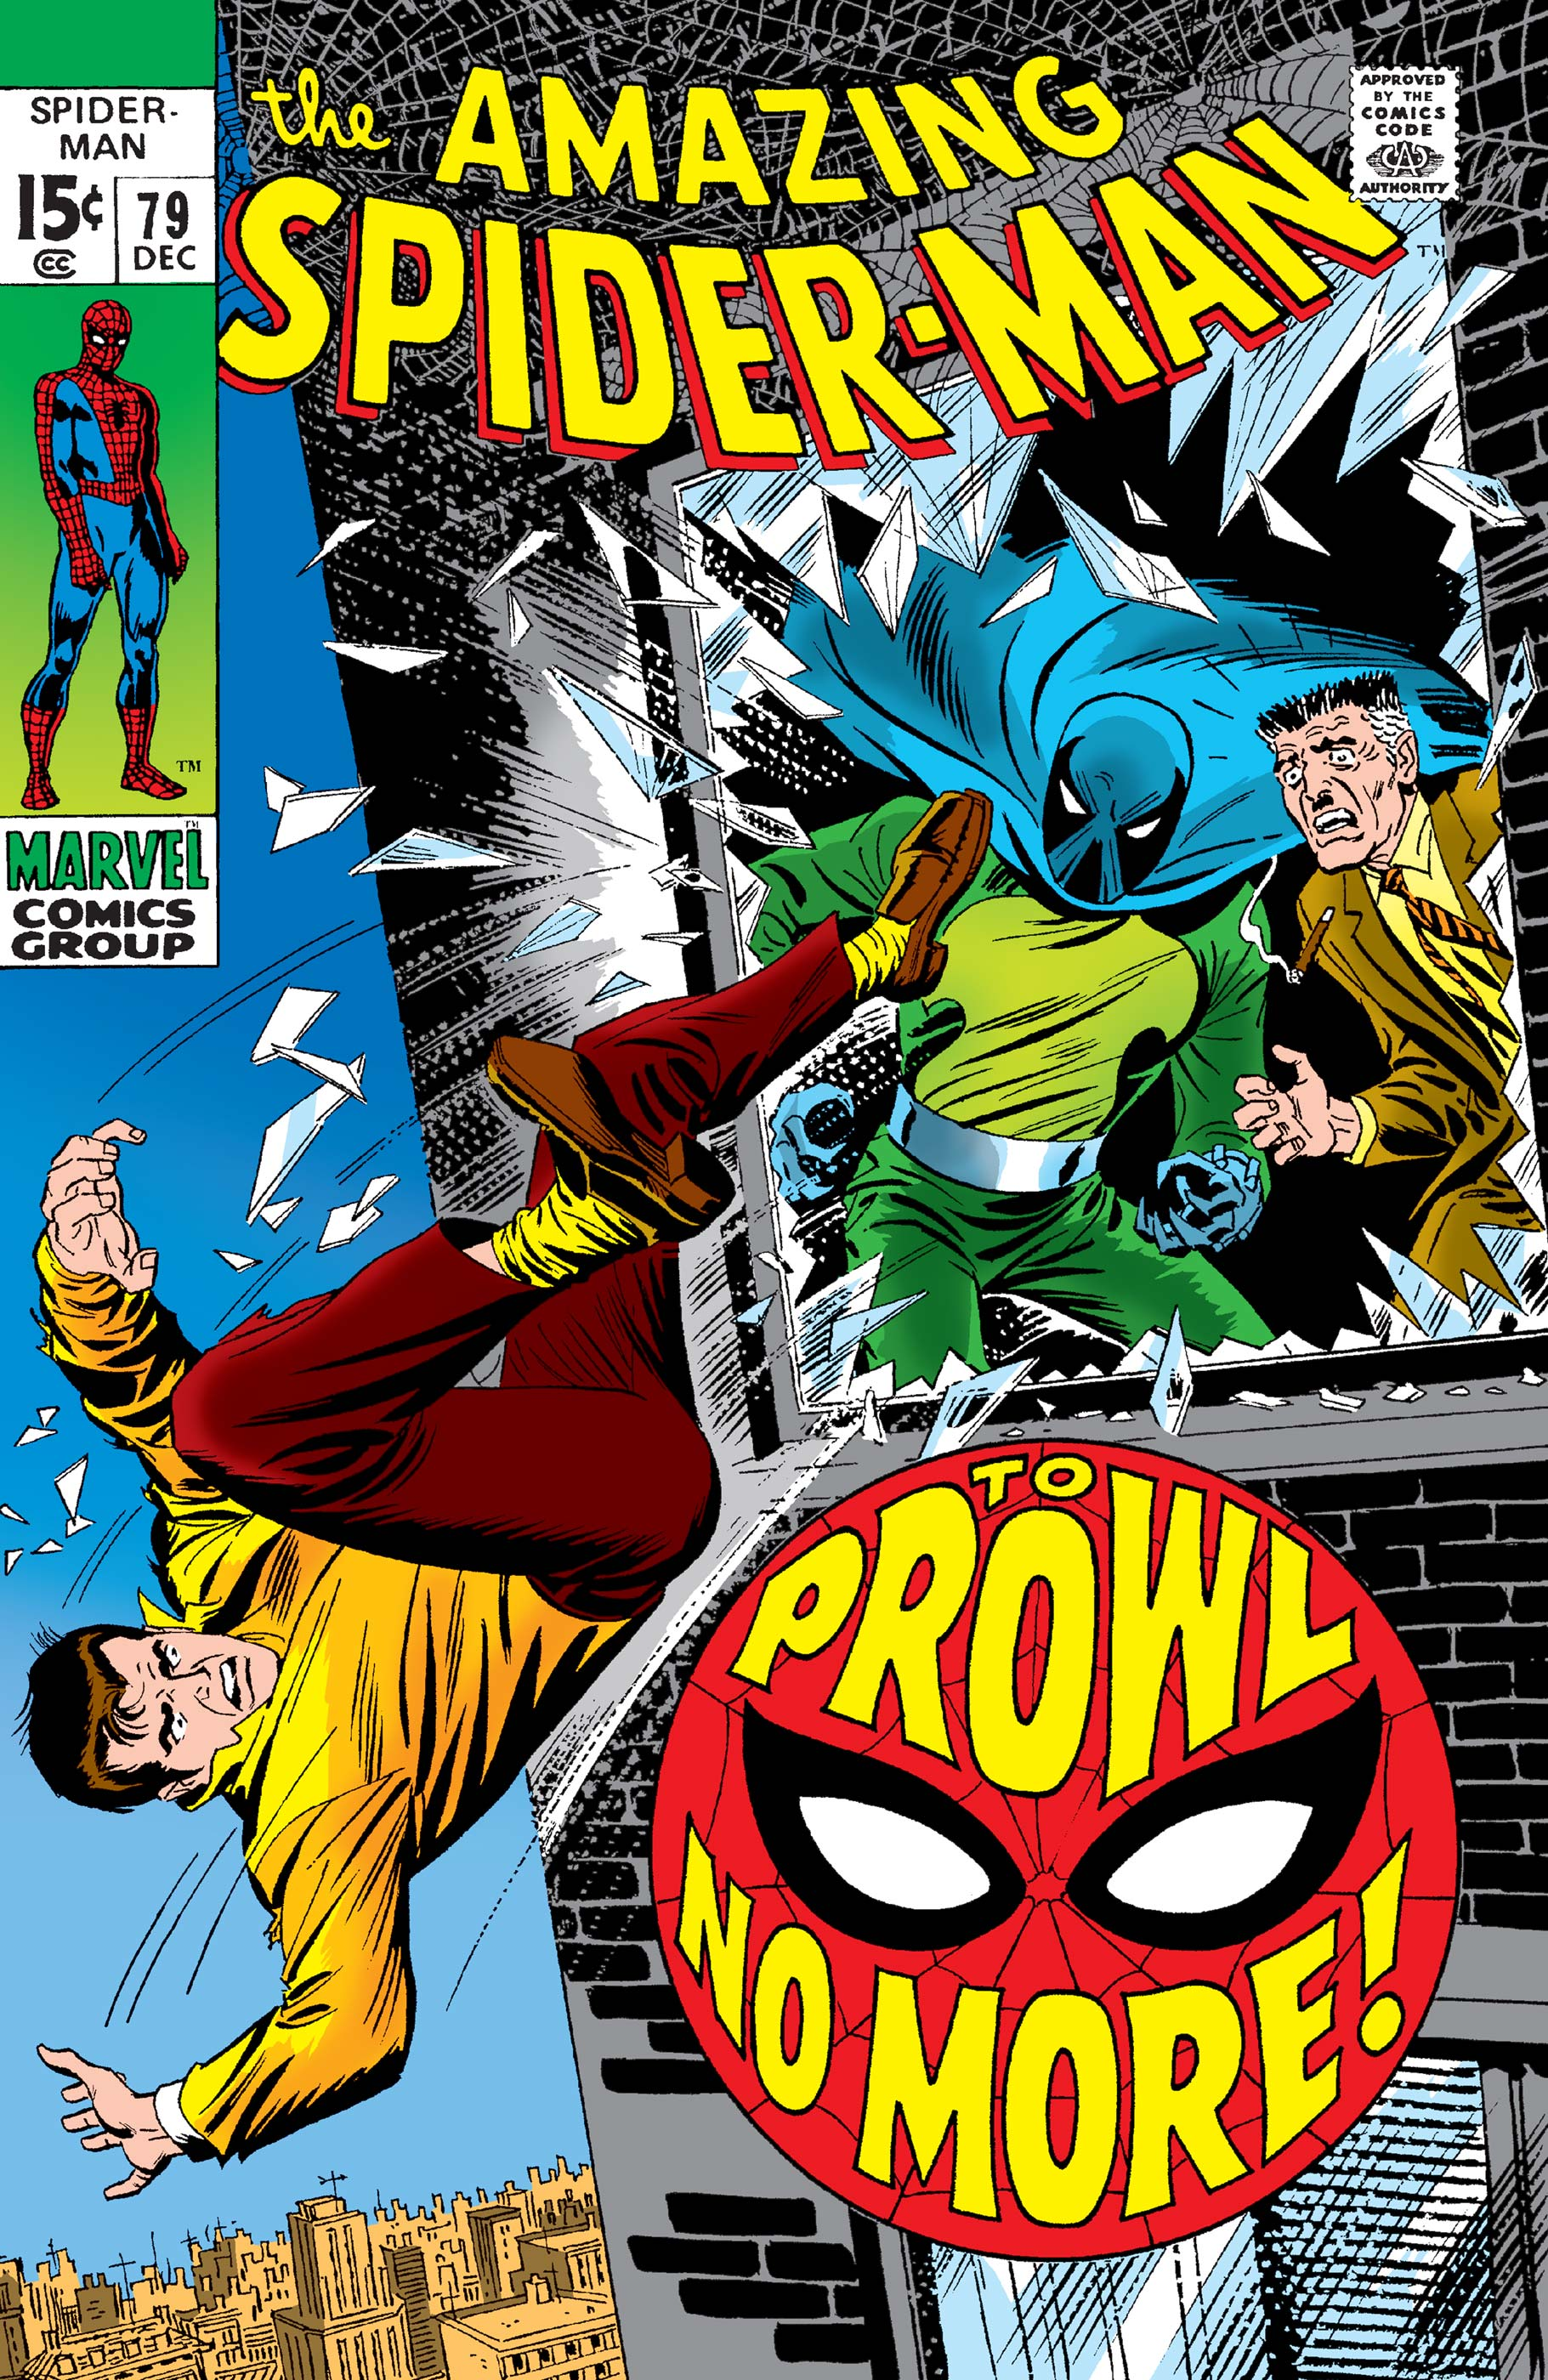 The Amazing Spider-Man (1963) #79